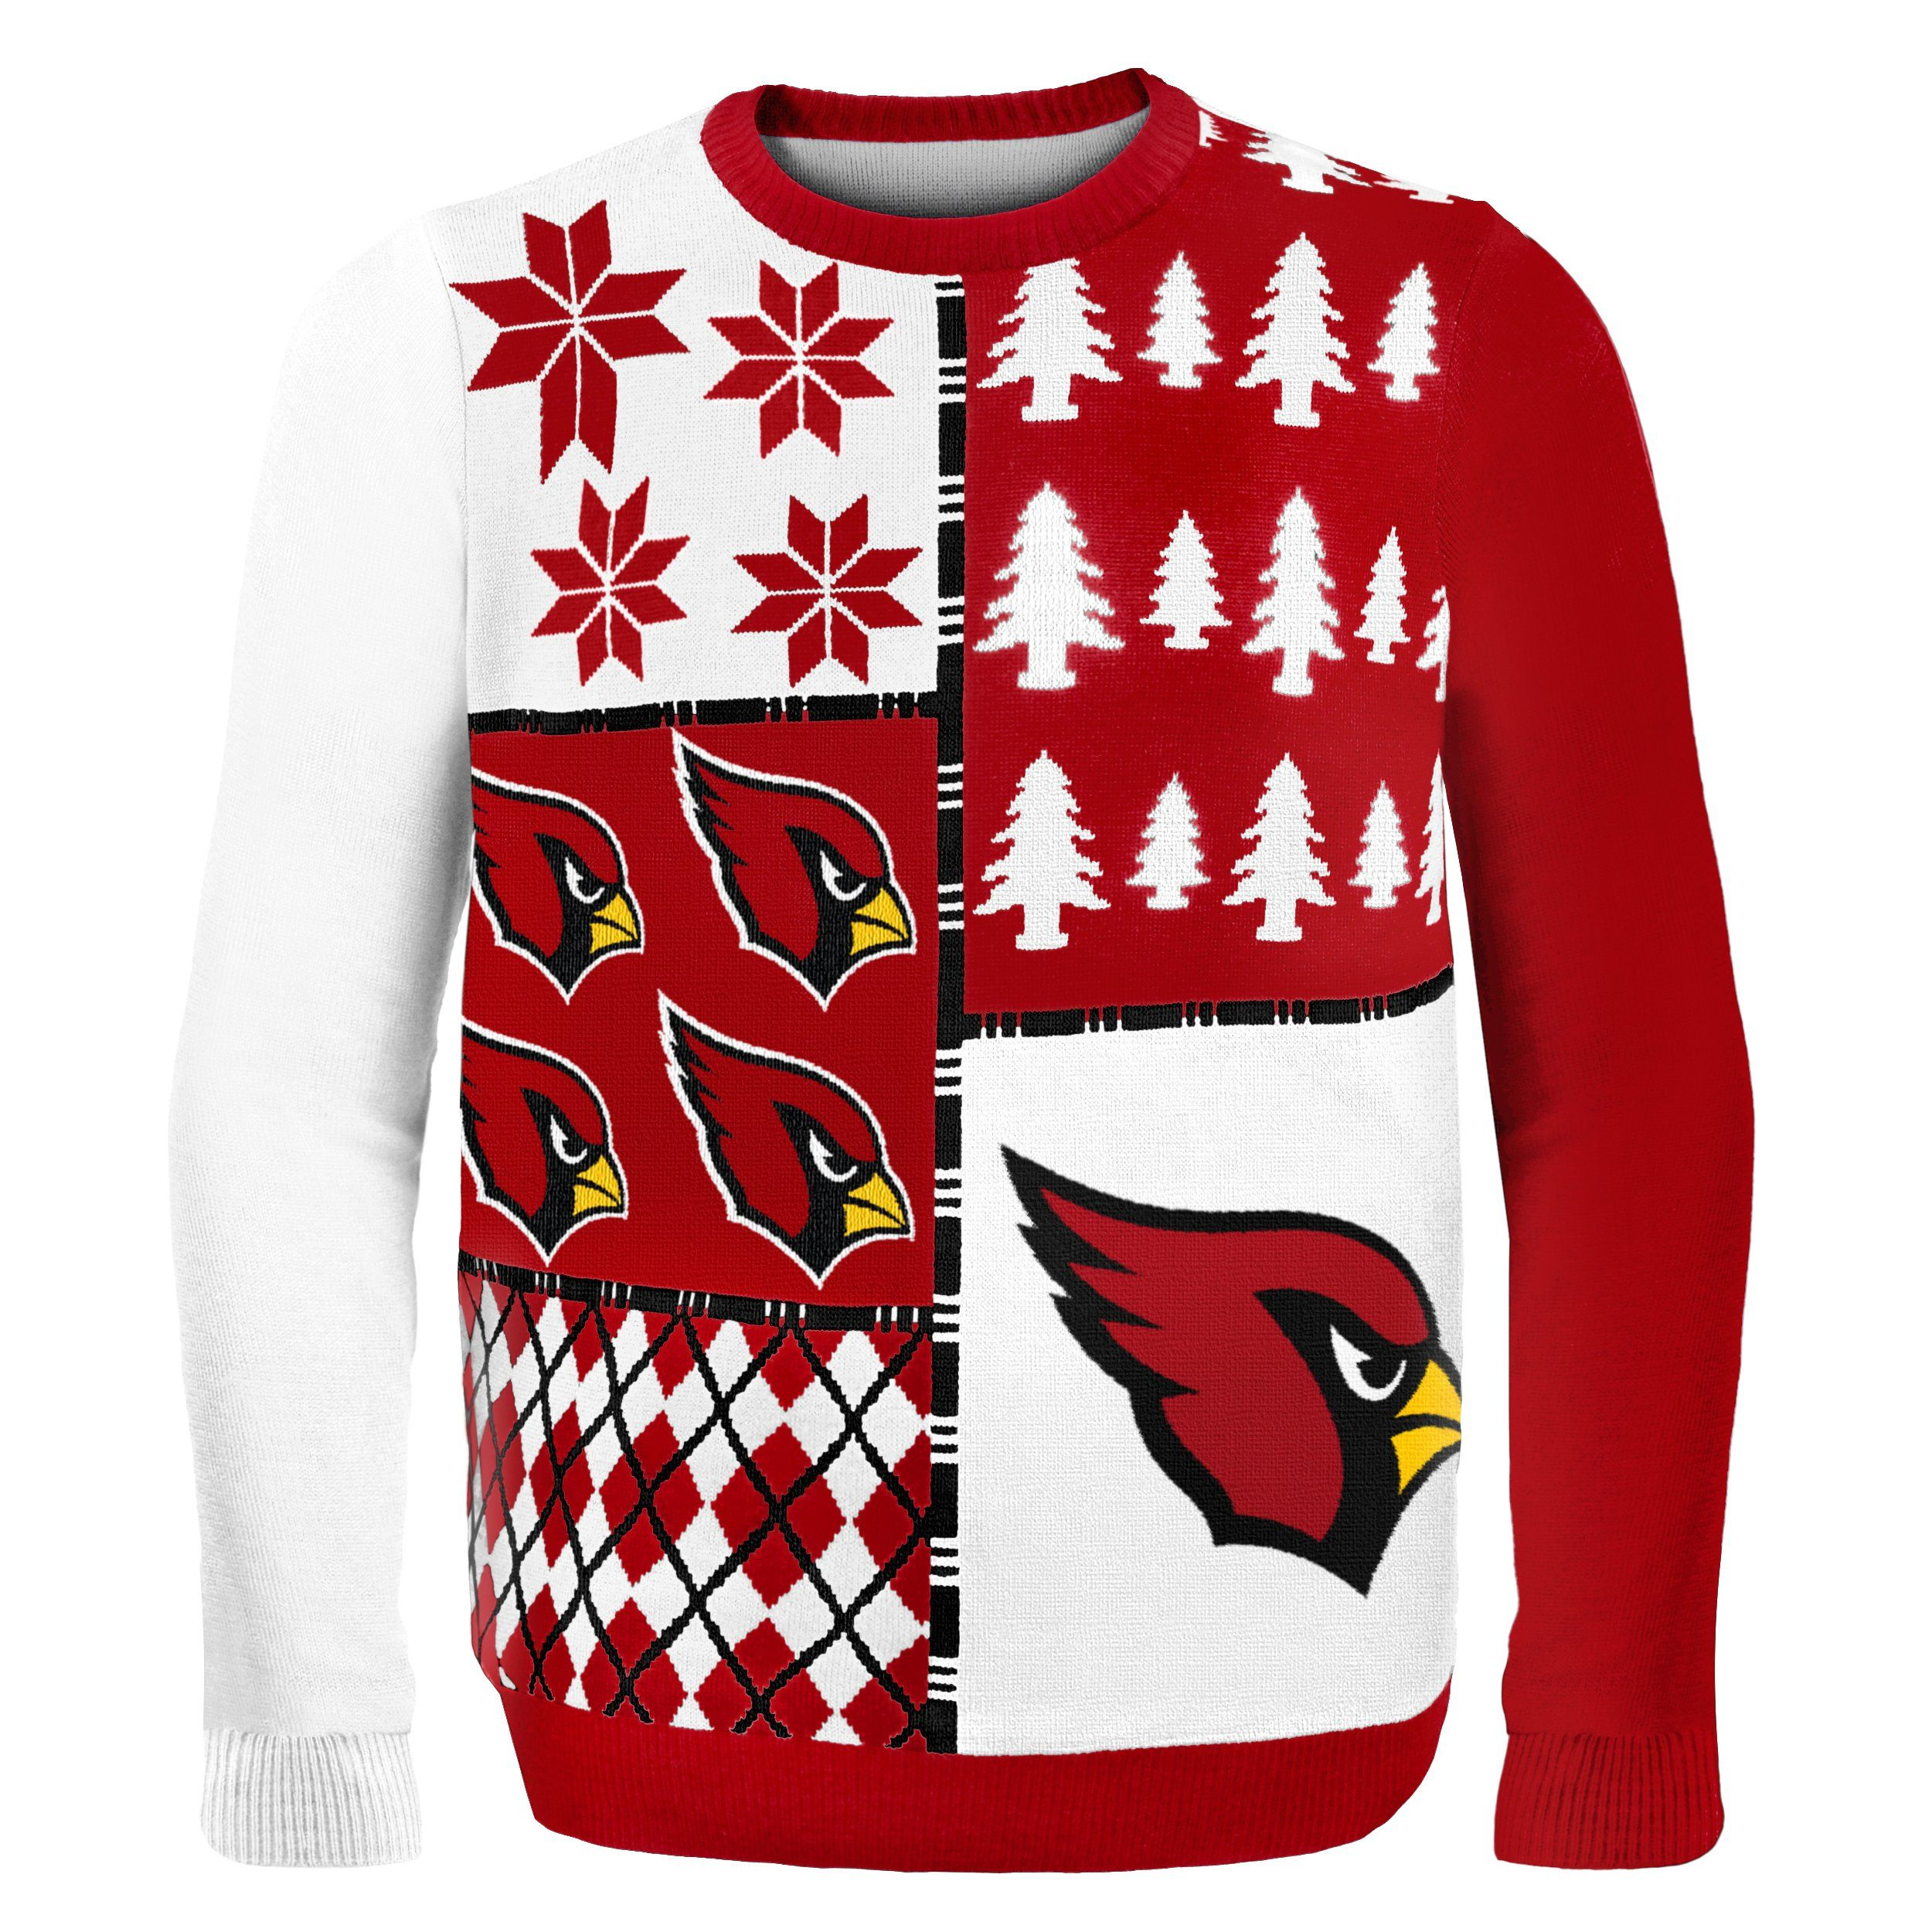 sale retailer 09166 9d7c8 Amazon.com : NFL Arizona Cardinals (and other team options ...